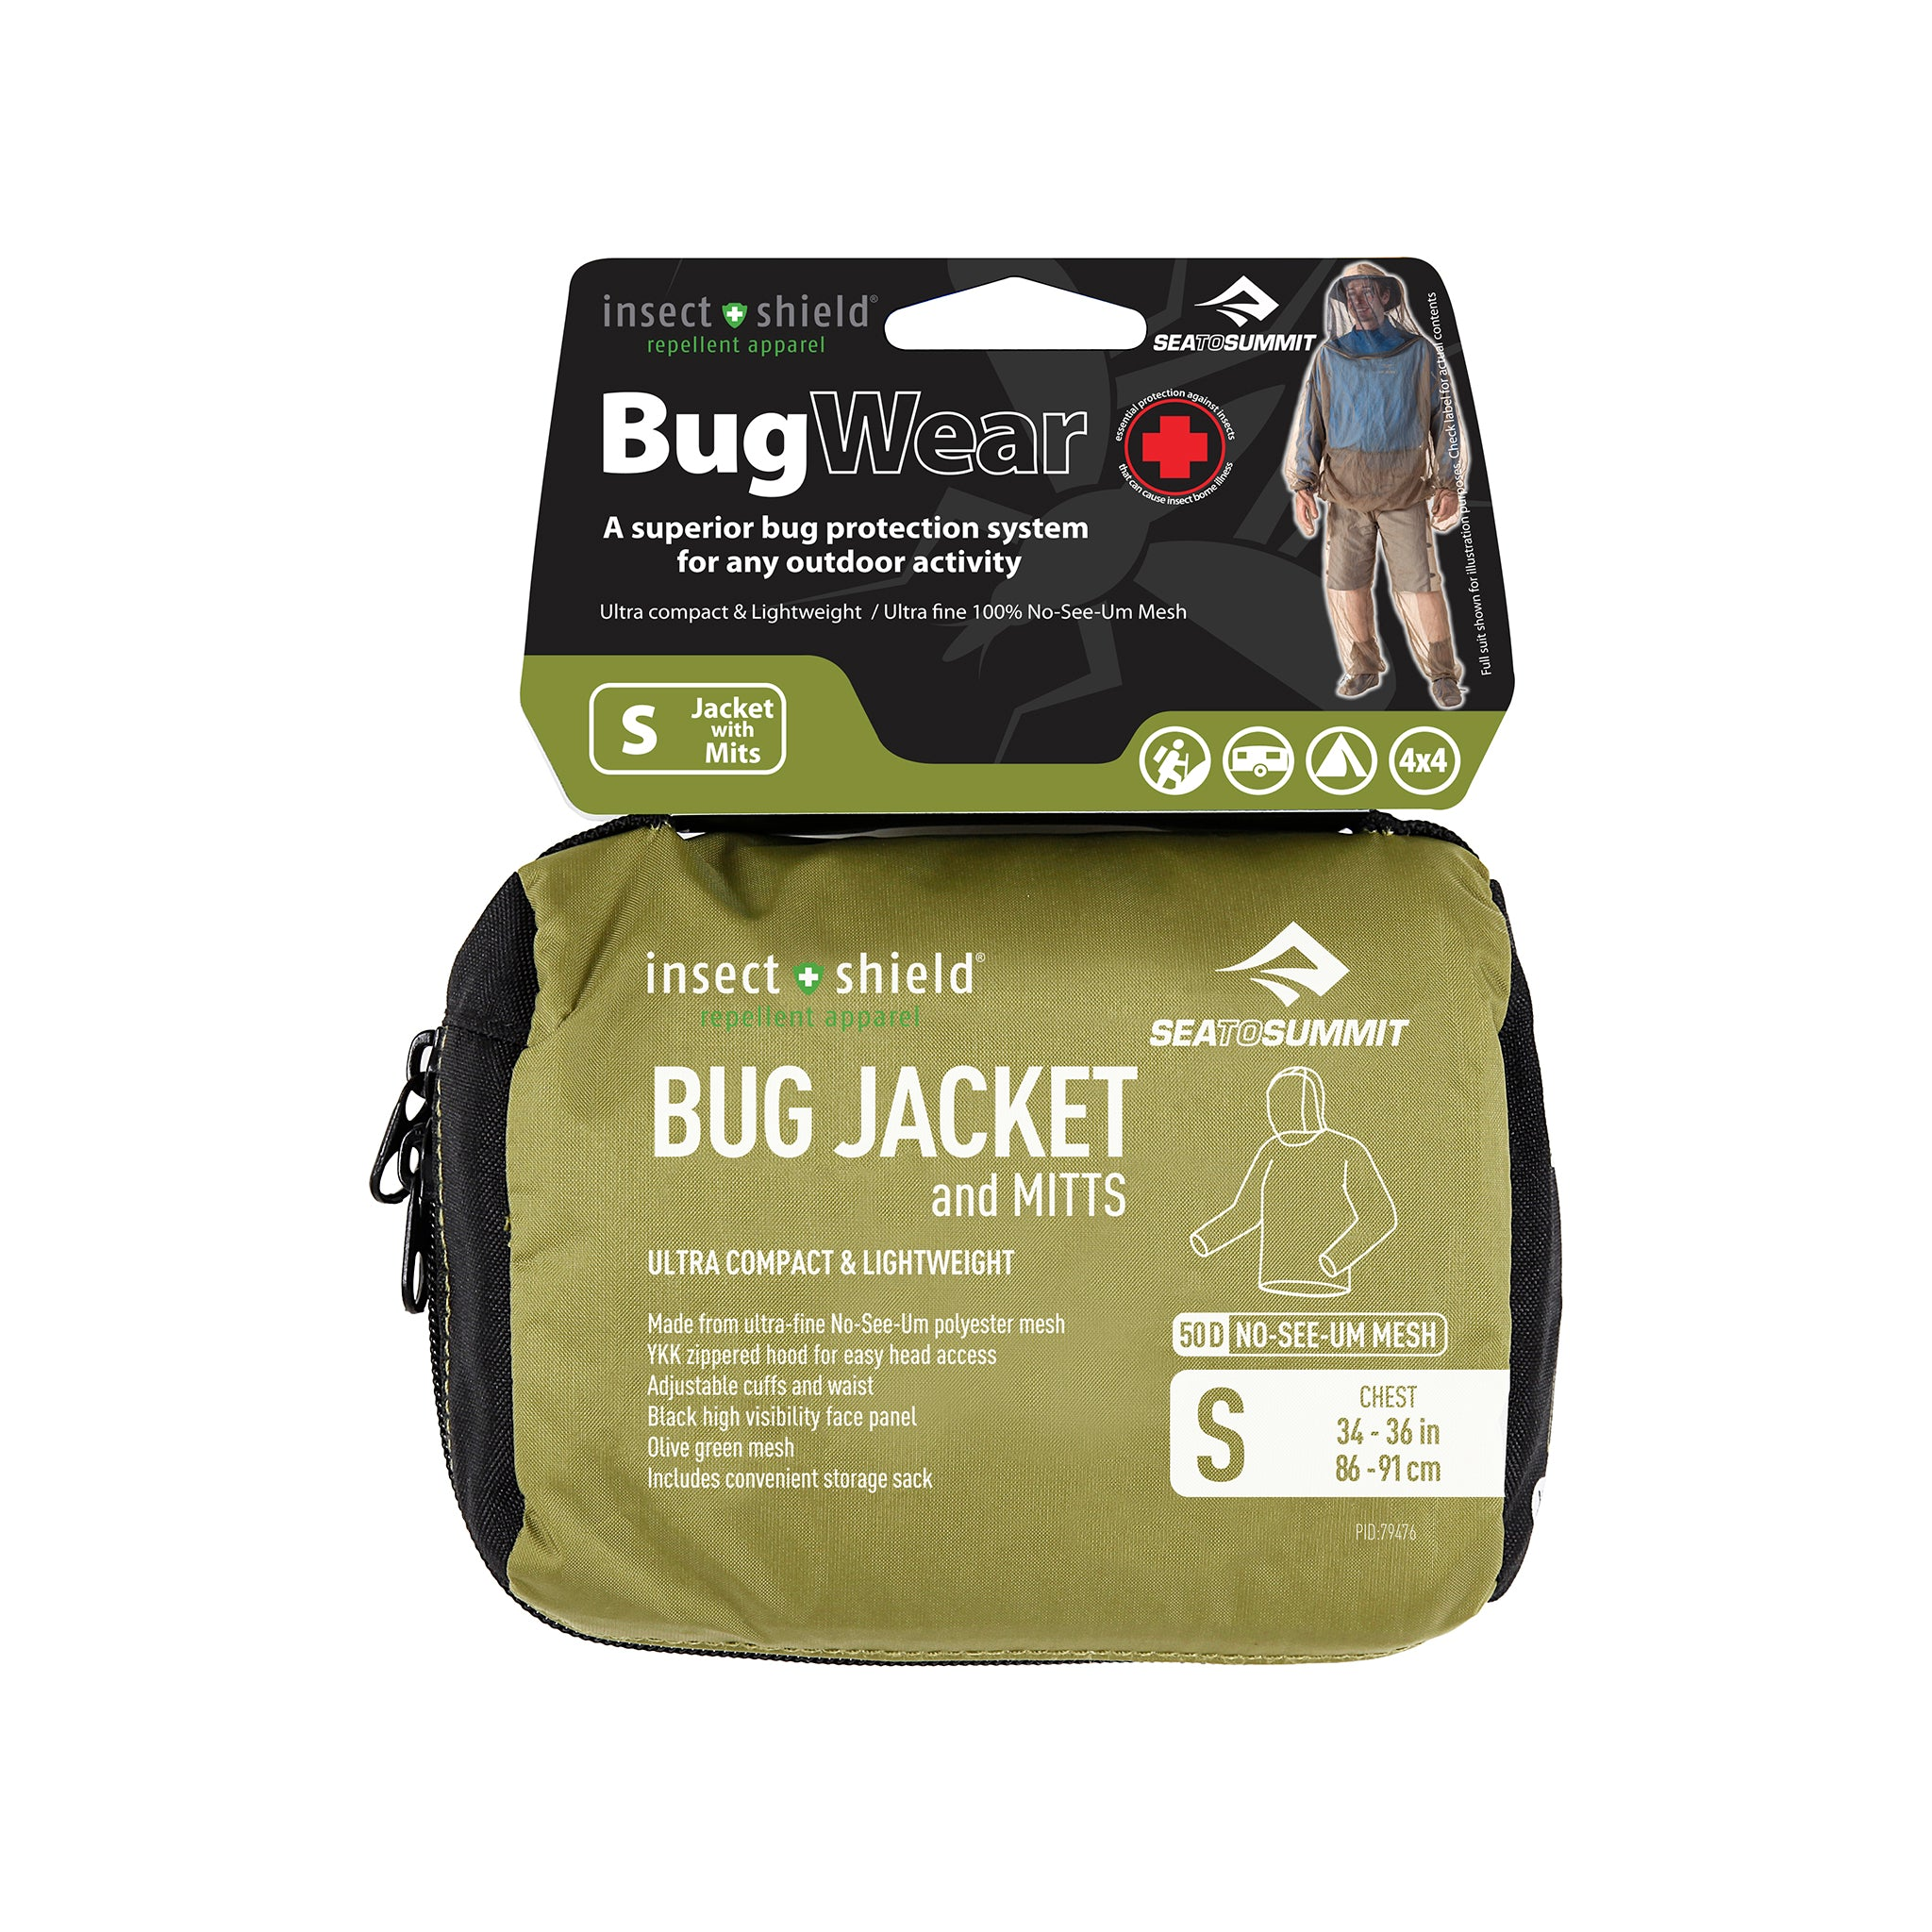 Bug Jacket _ mosquito protection clothing _ insect shield _ small